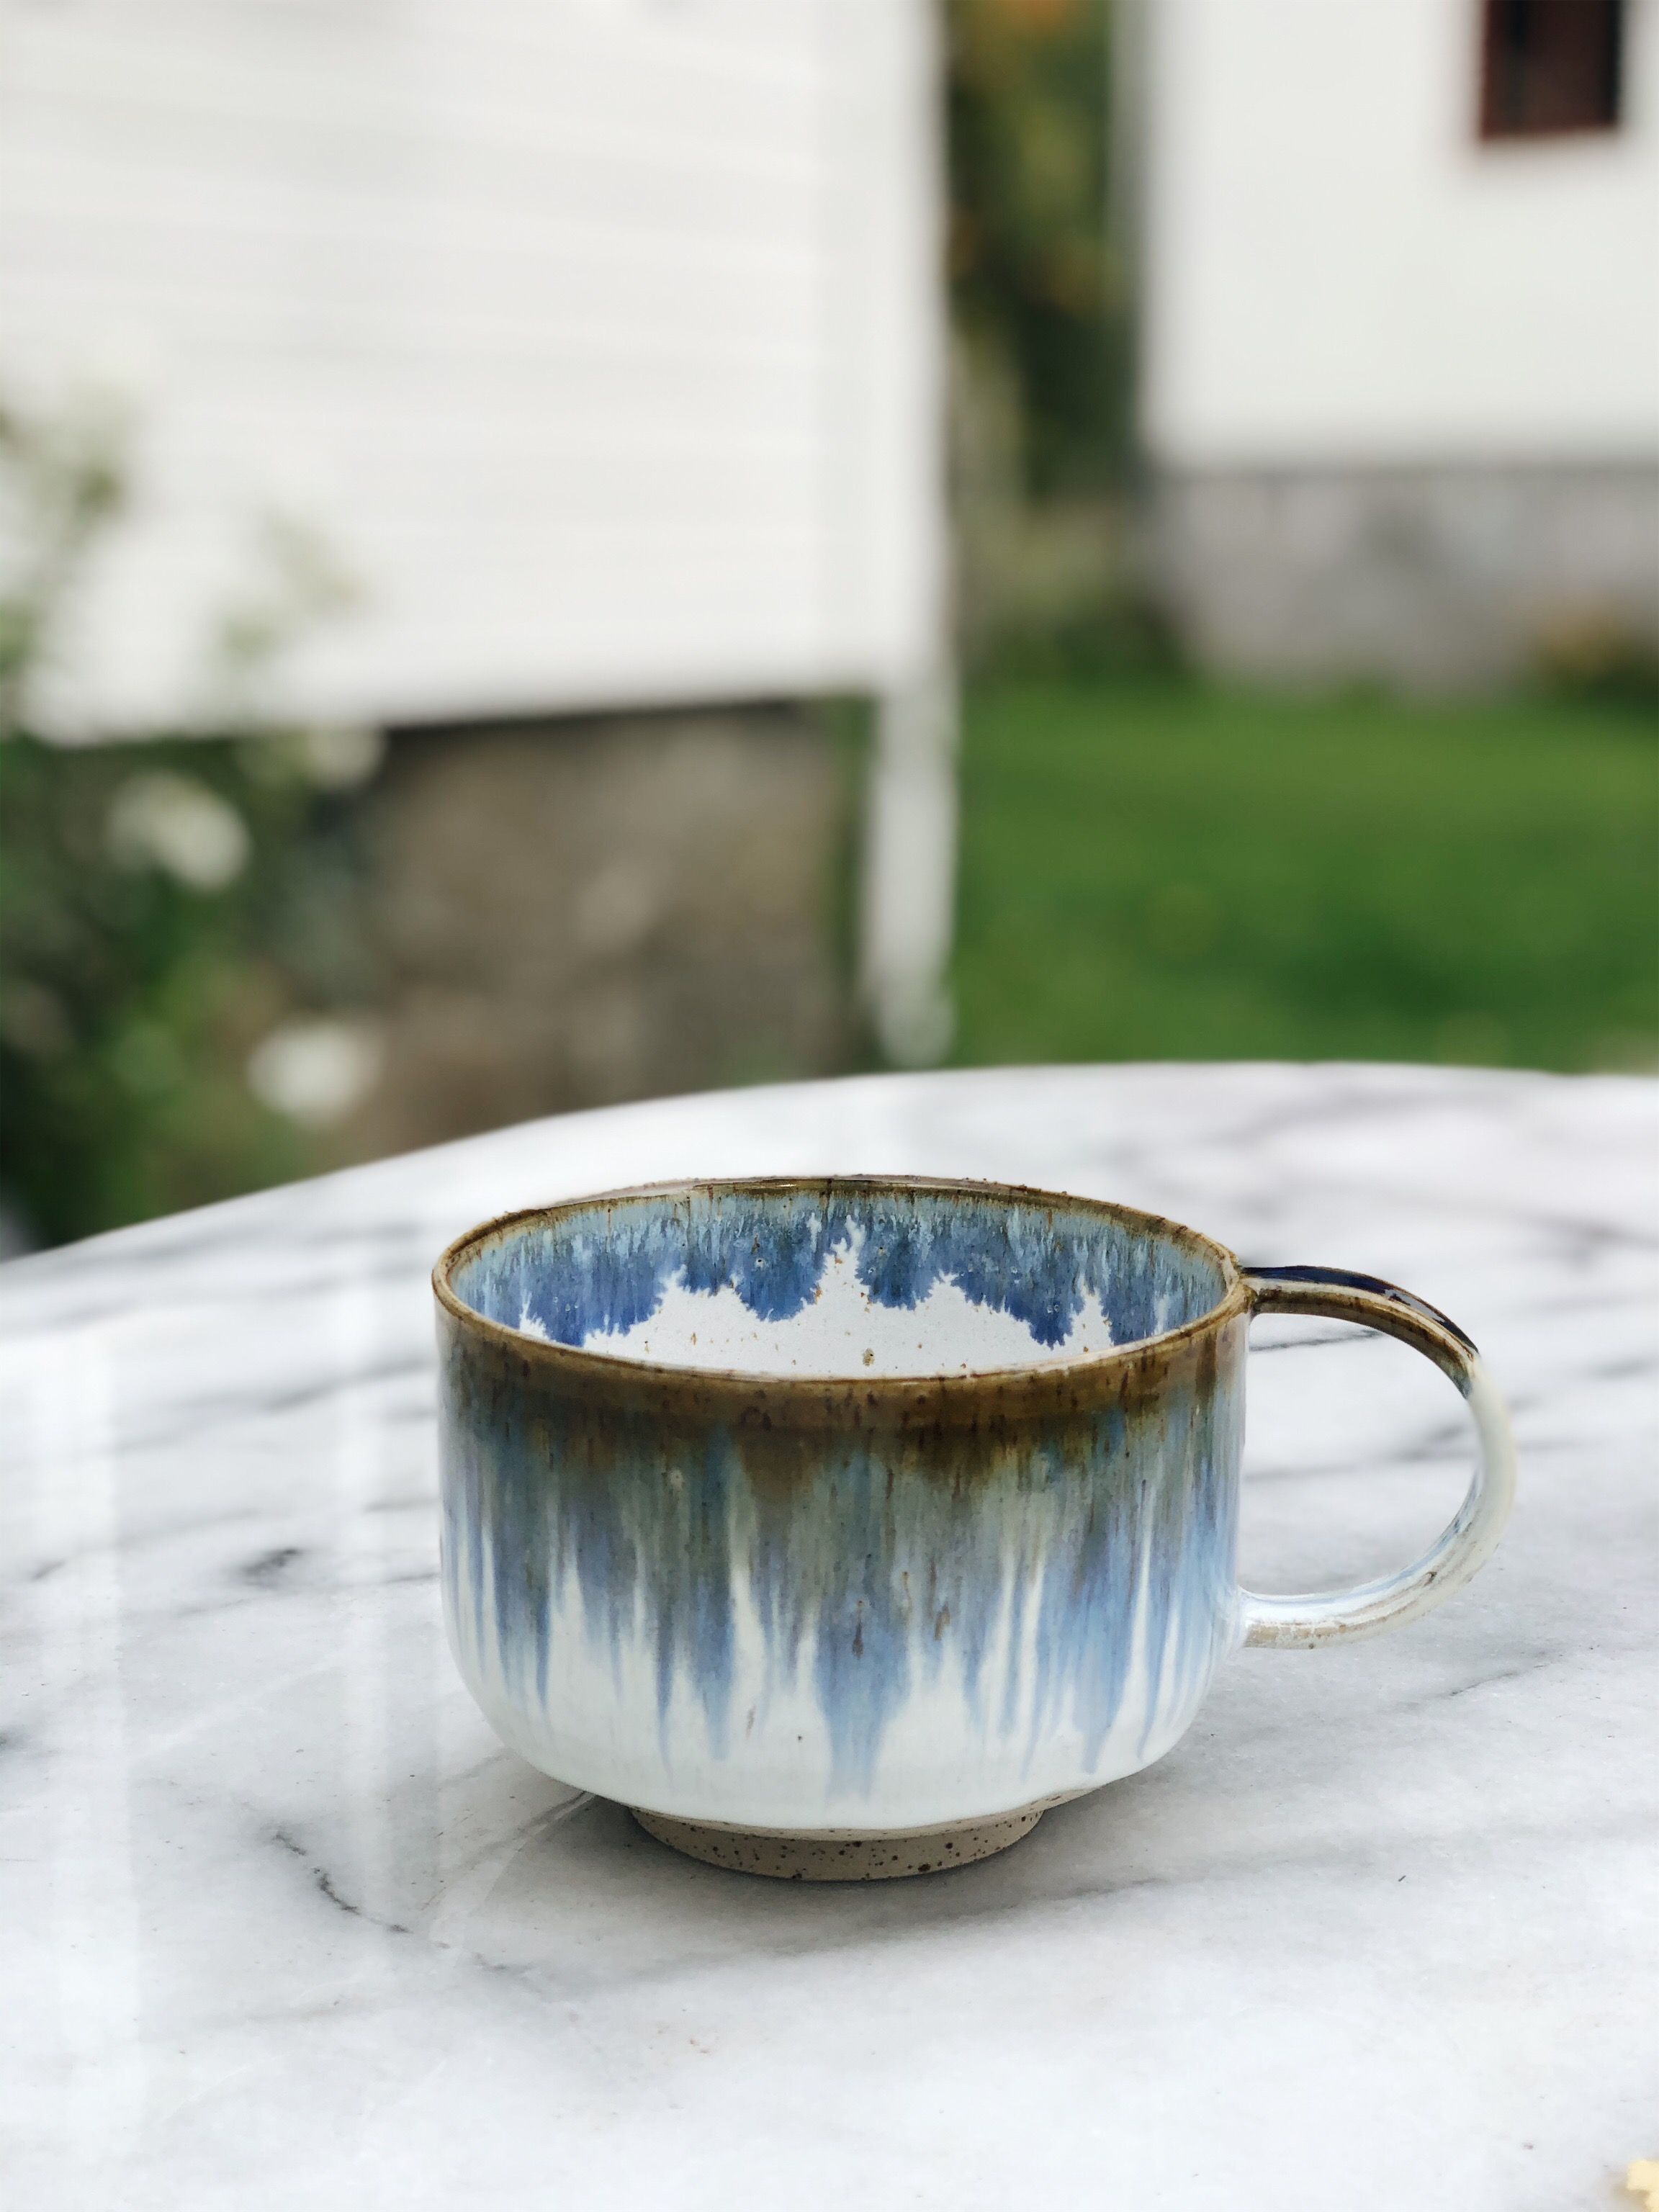 STUDIO ARHØJ - Mion Mug, Inclement Weather